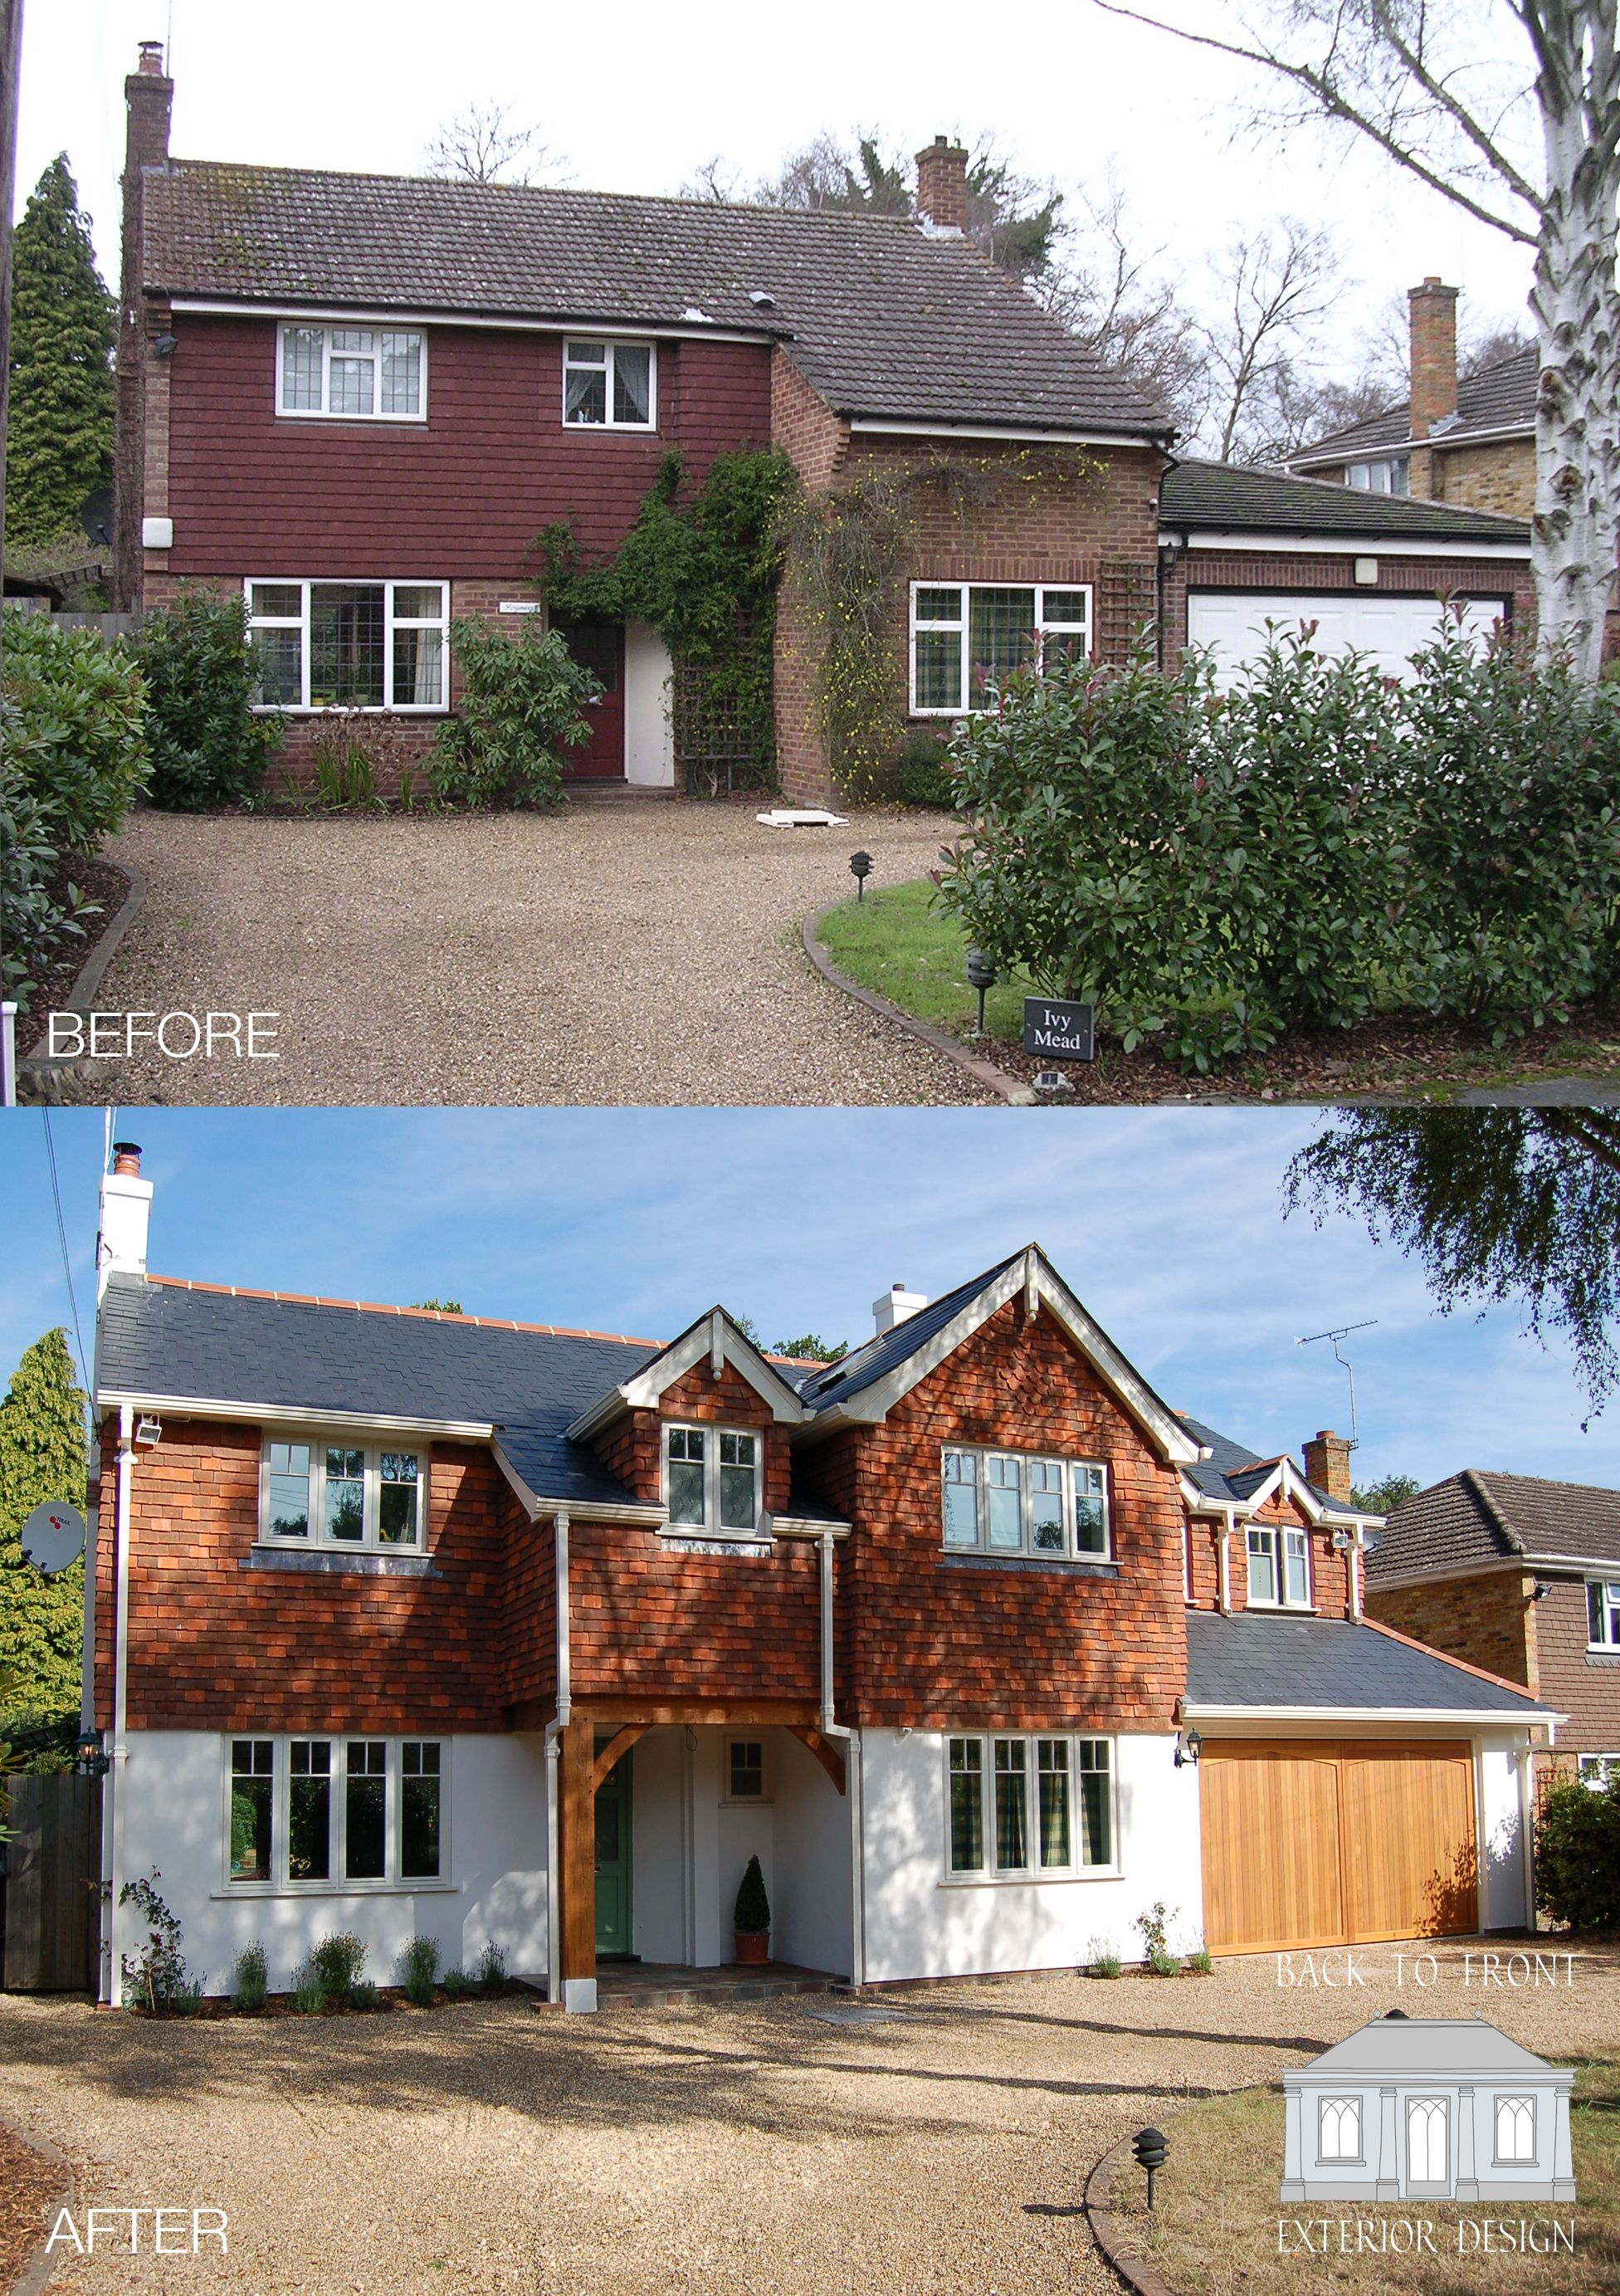 How To Transform Your Family Home! Extending, Remodelling